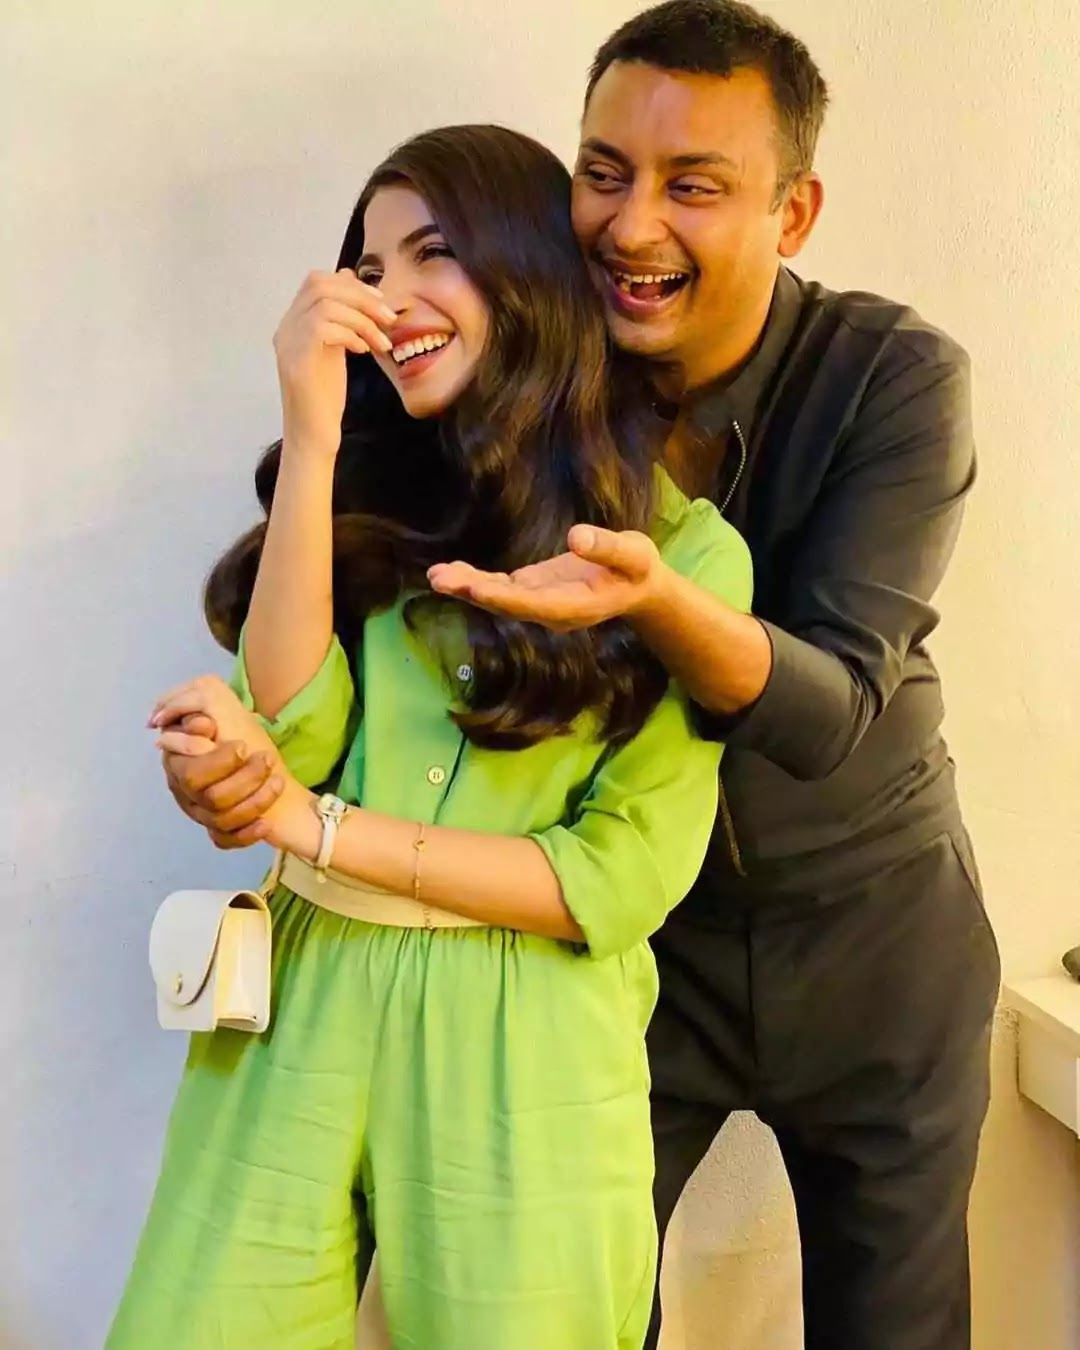 Kinza Hashmi Naughty And Friendly Pictures With Her Friend Babar Zaheer